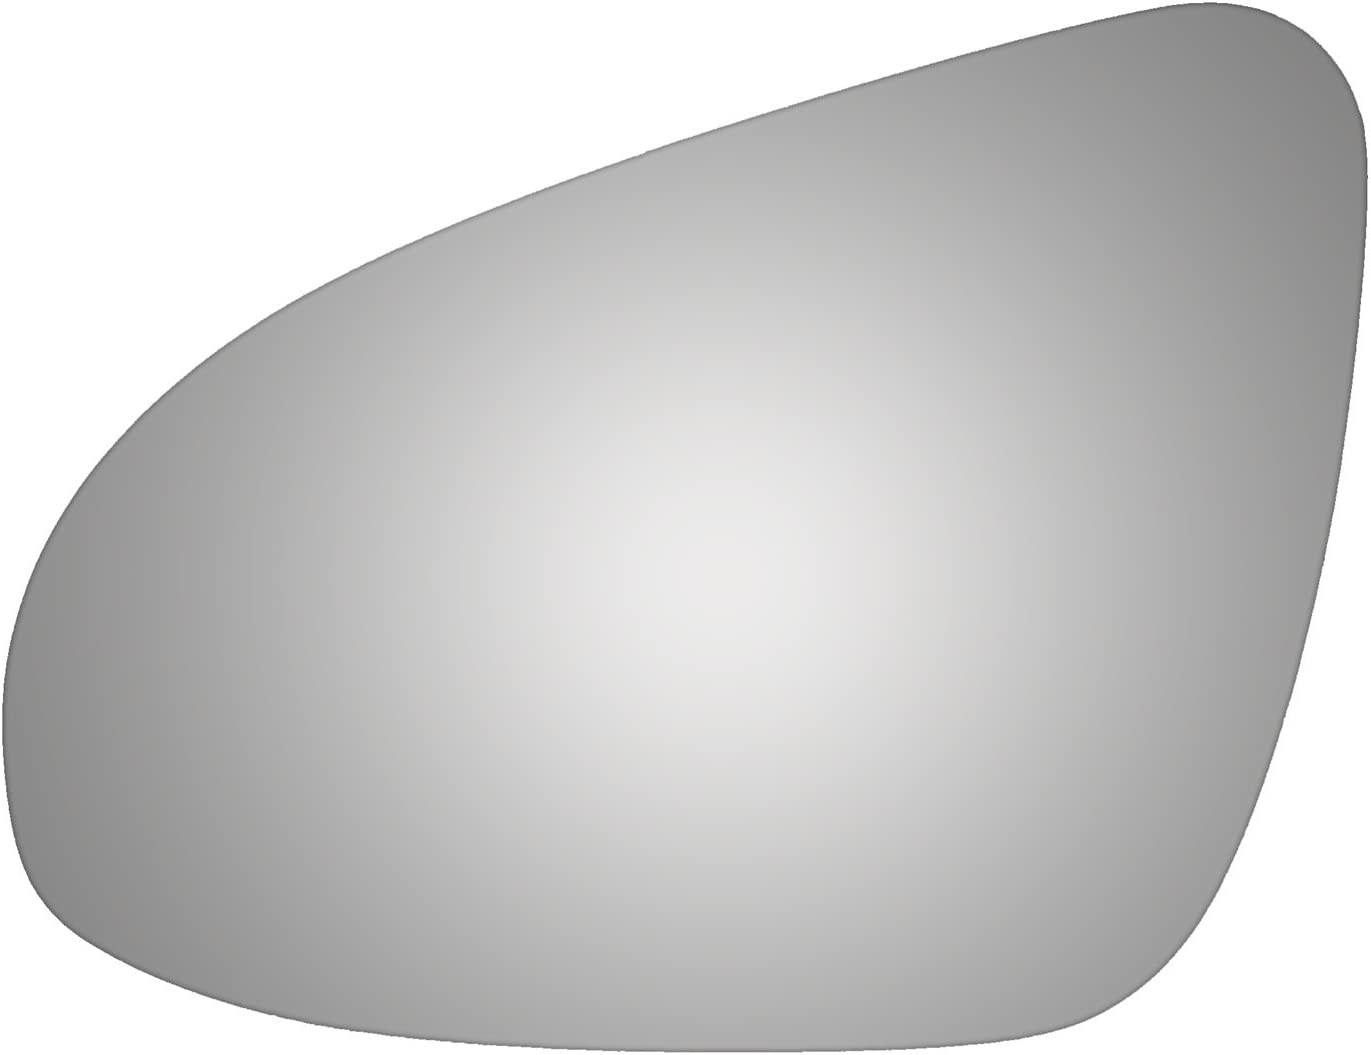 service Burco 4469 Flat Driver Side Replacement Glass 12-16 Mirror P for Max 62% OFF